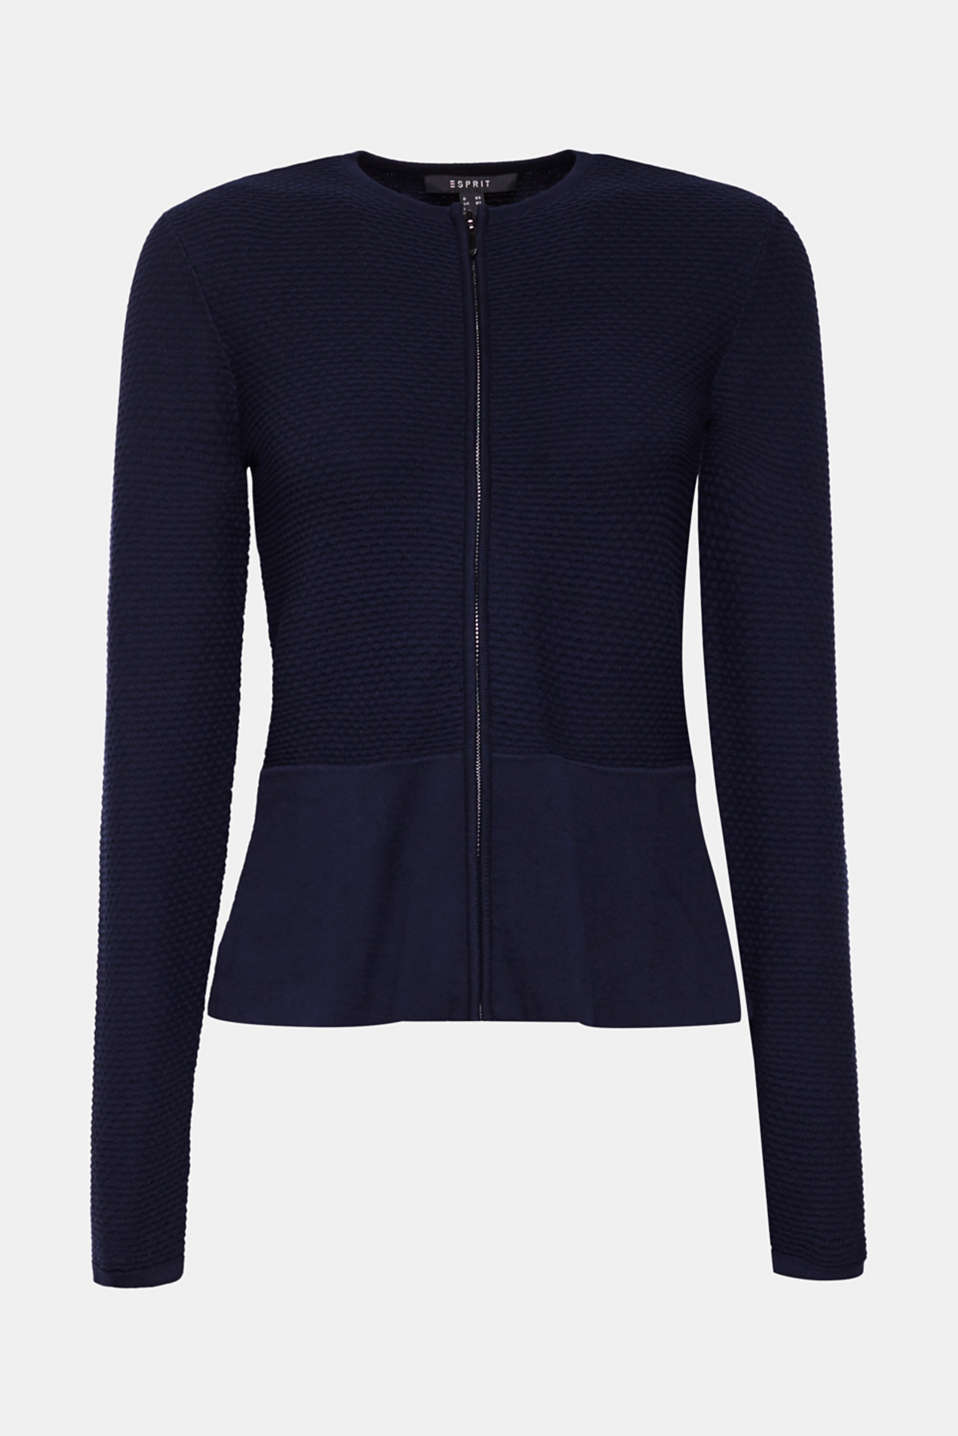 Textured cardigan with a peplum, NAVY, detail image number 7